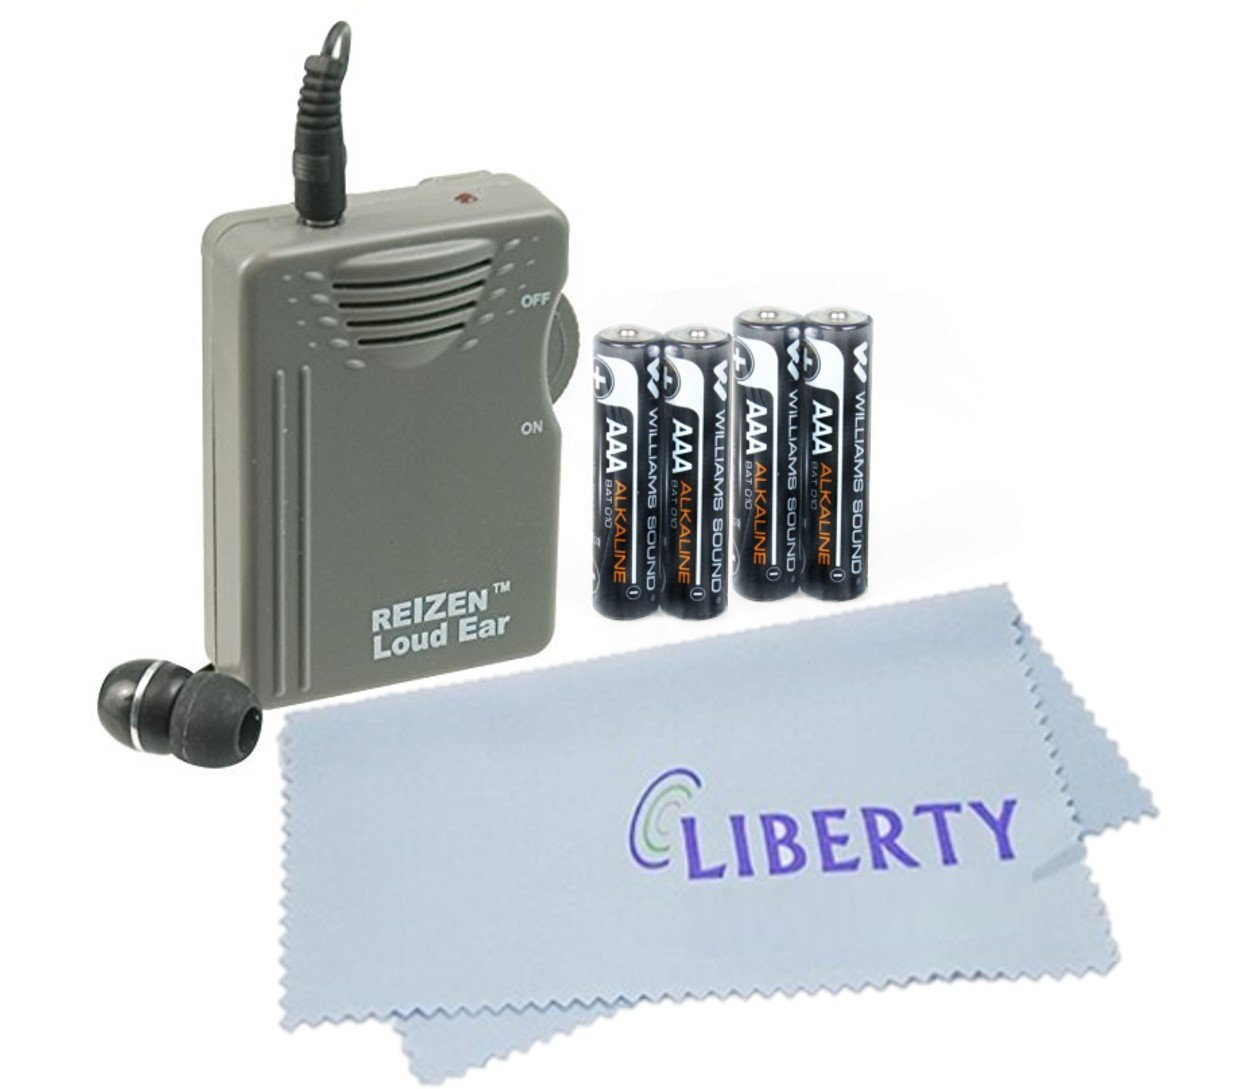 Deluxe Bundle - Reizen Loud Ear 110dB Gain Personal Amplifier With an Extra Pair of AAA Batteries and LIBERTY Cleaning Cloth by Reizen